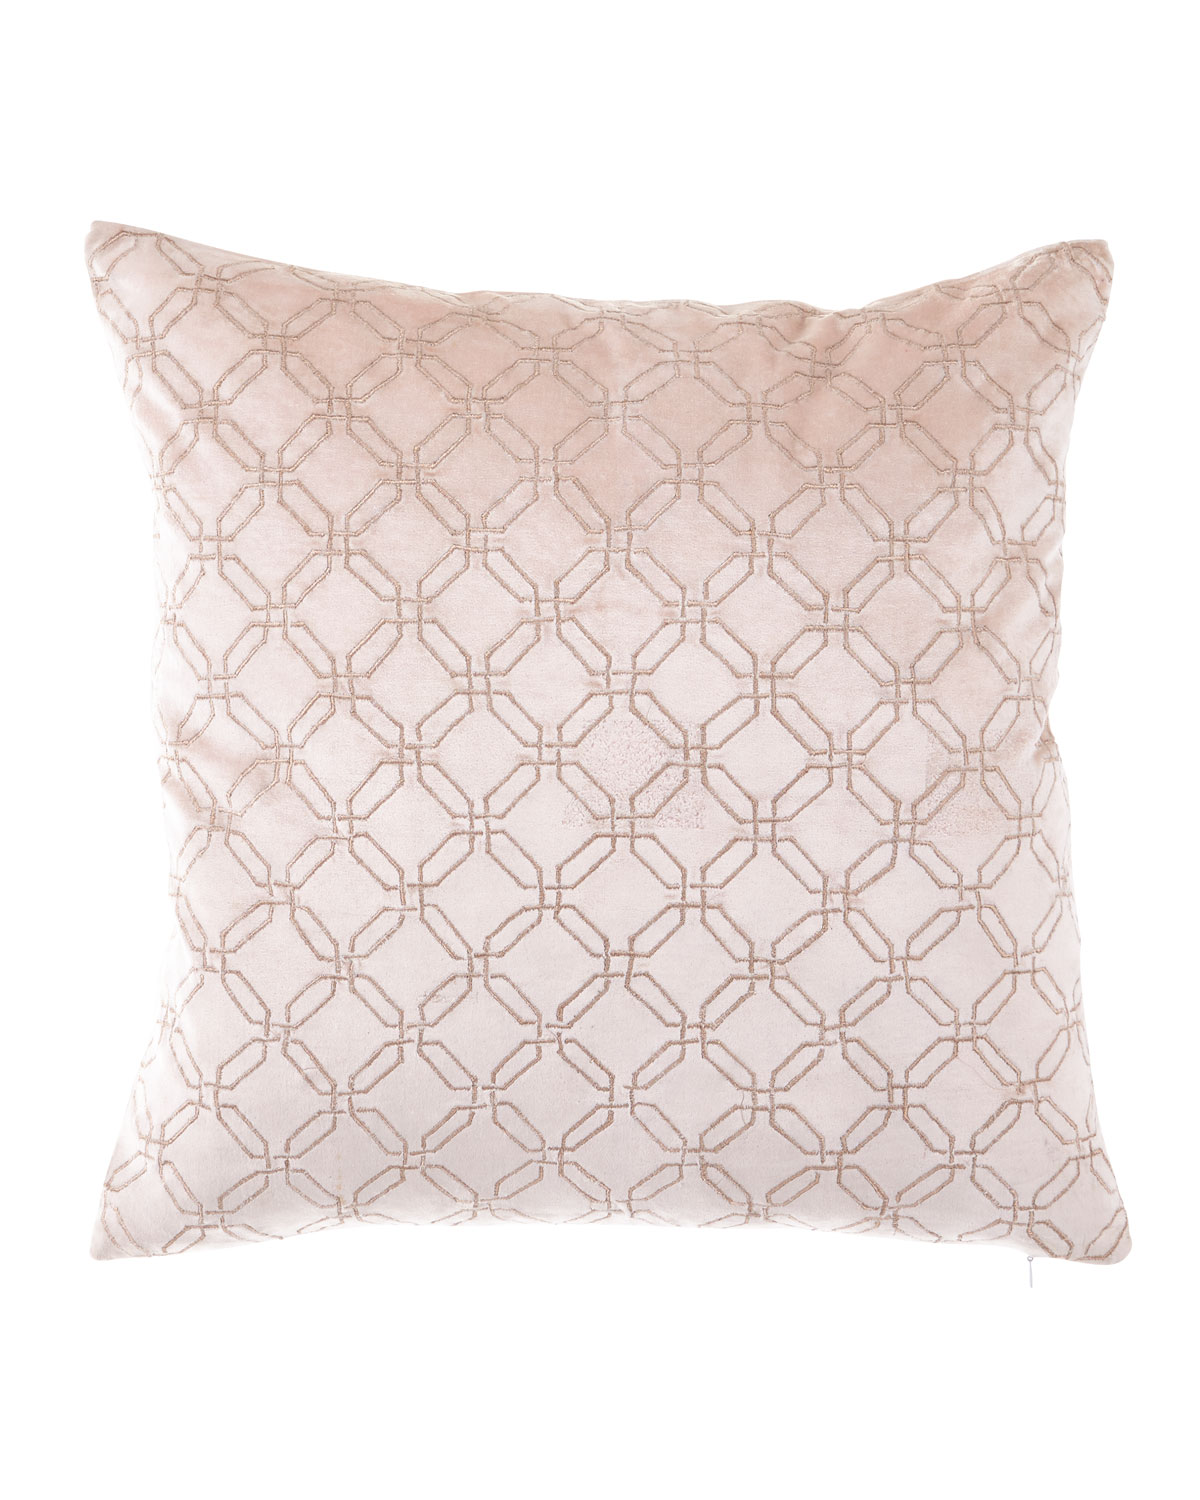 Rose Gold Square Decorative Pillow